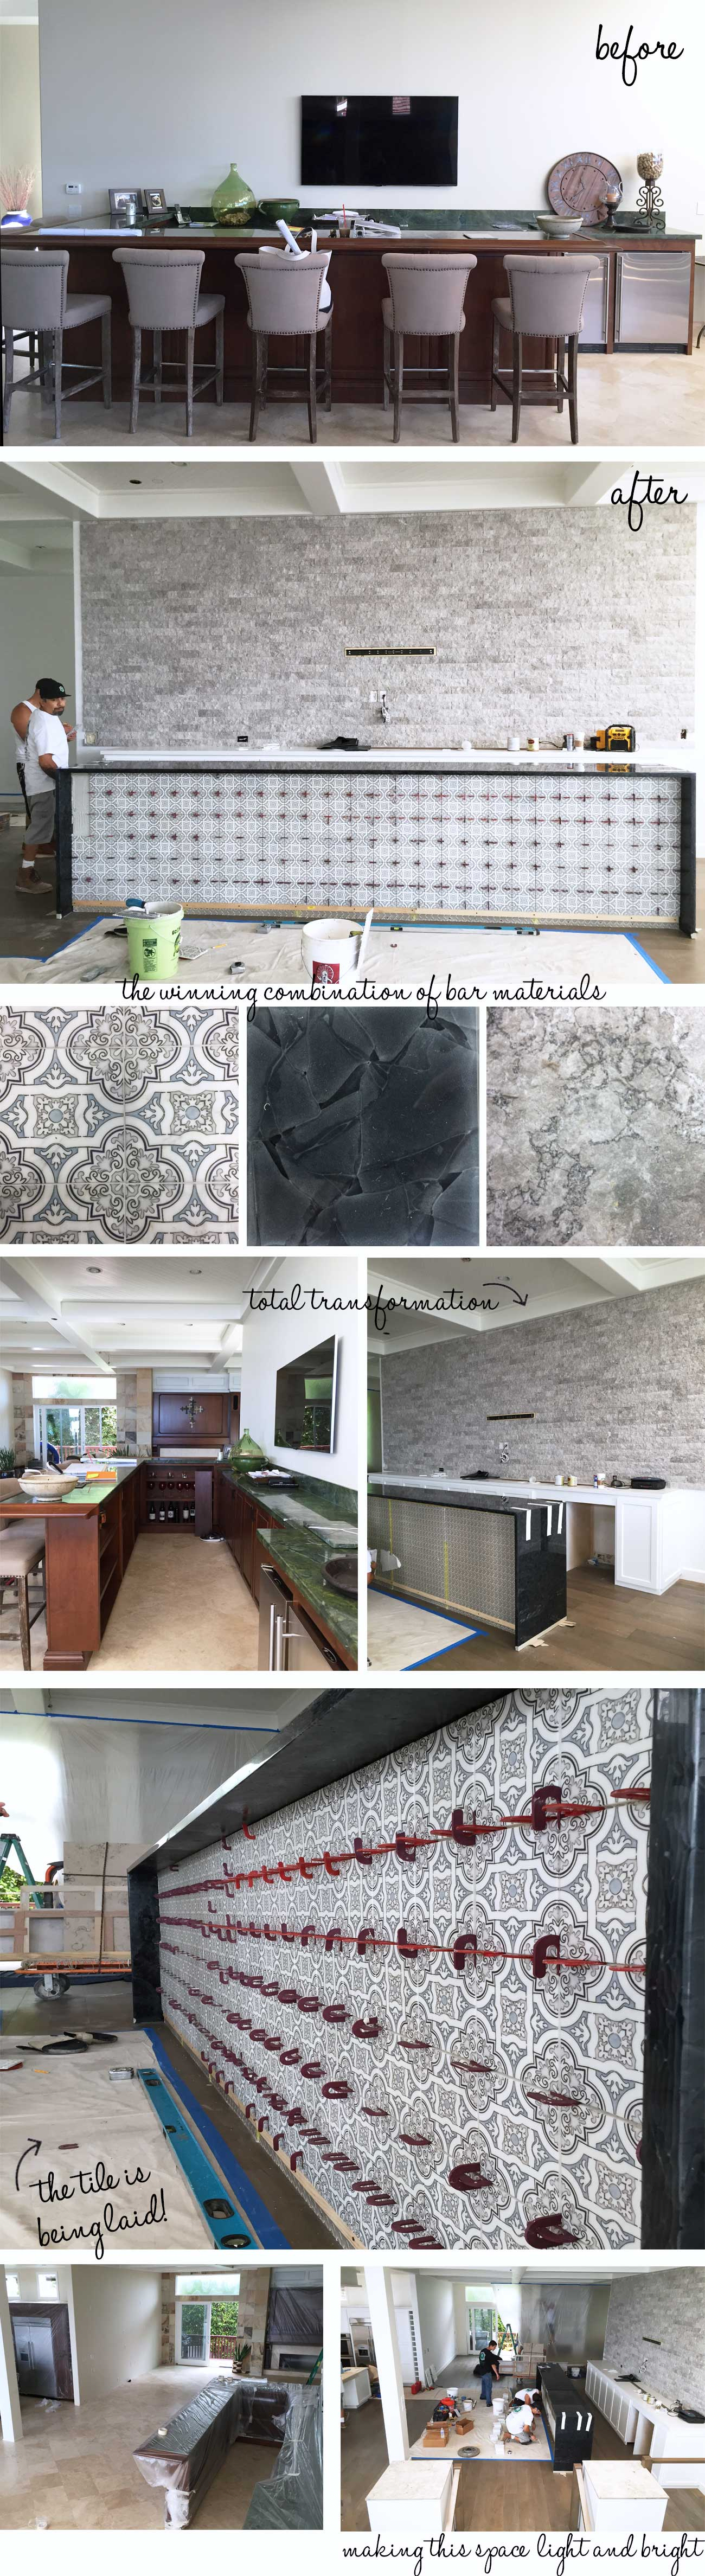 blackband_design_san_clemente_renovations_2